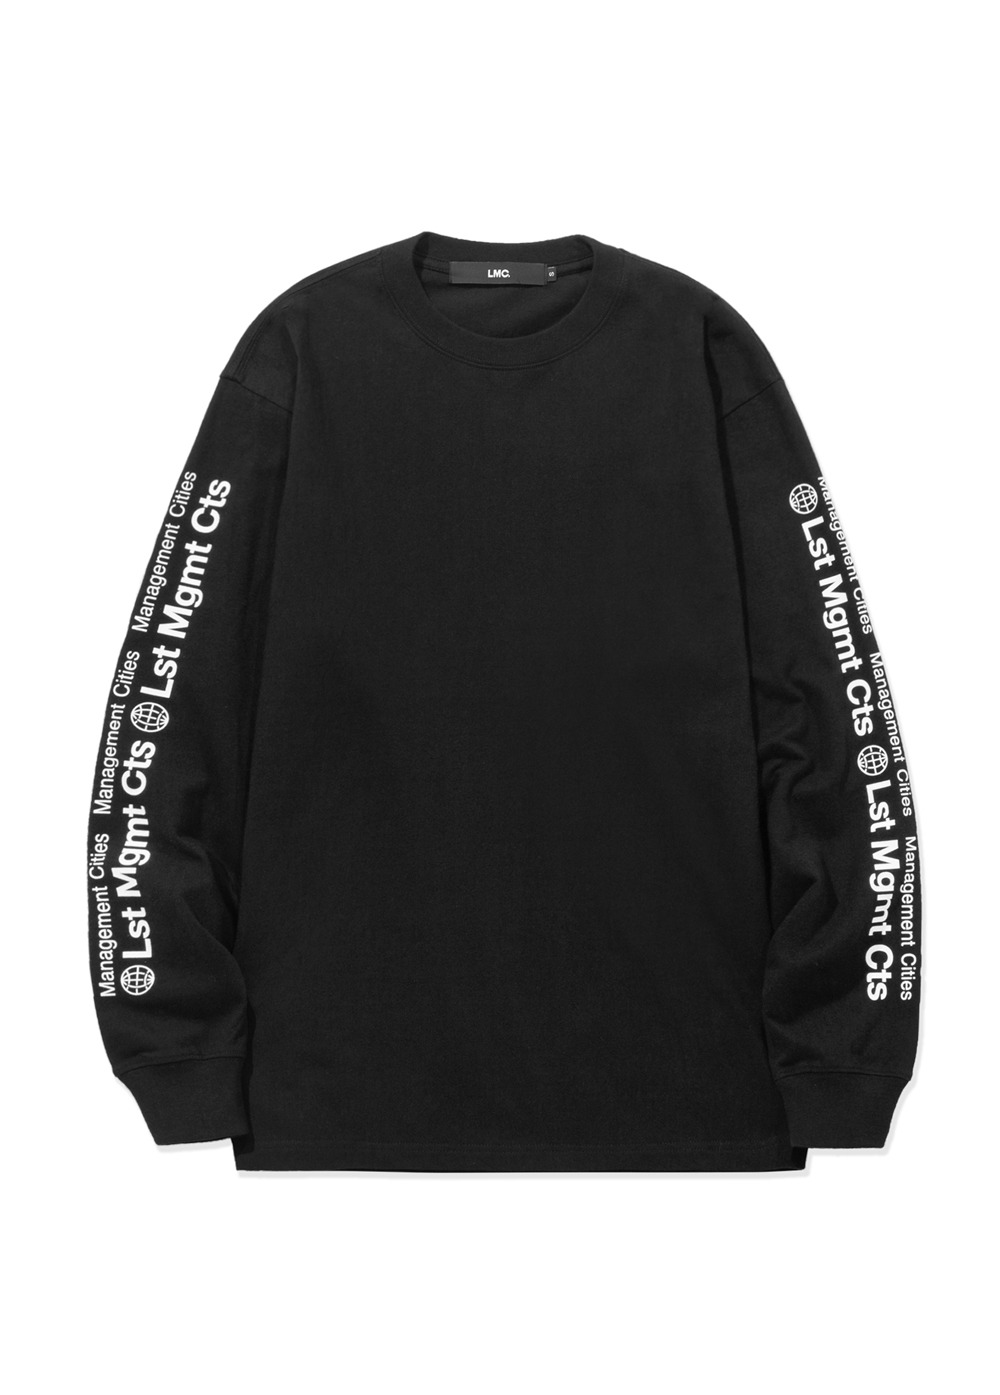 LMC COMBINATION LONG SLV TEE black